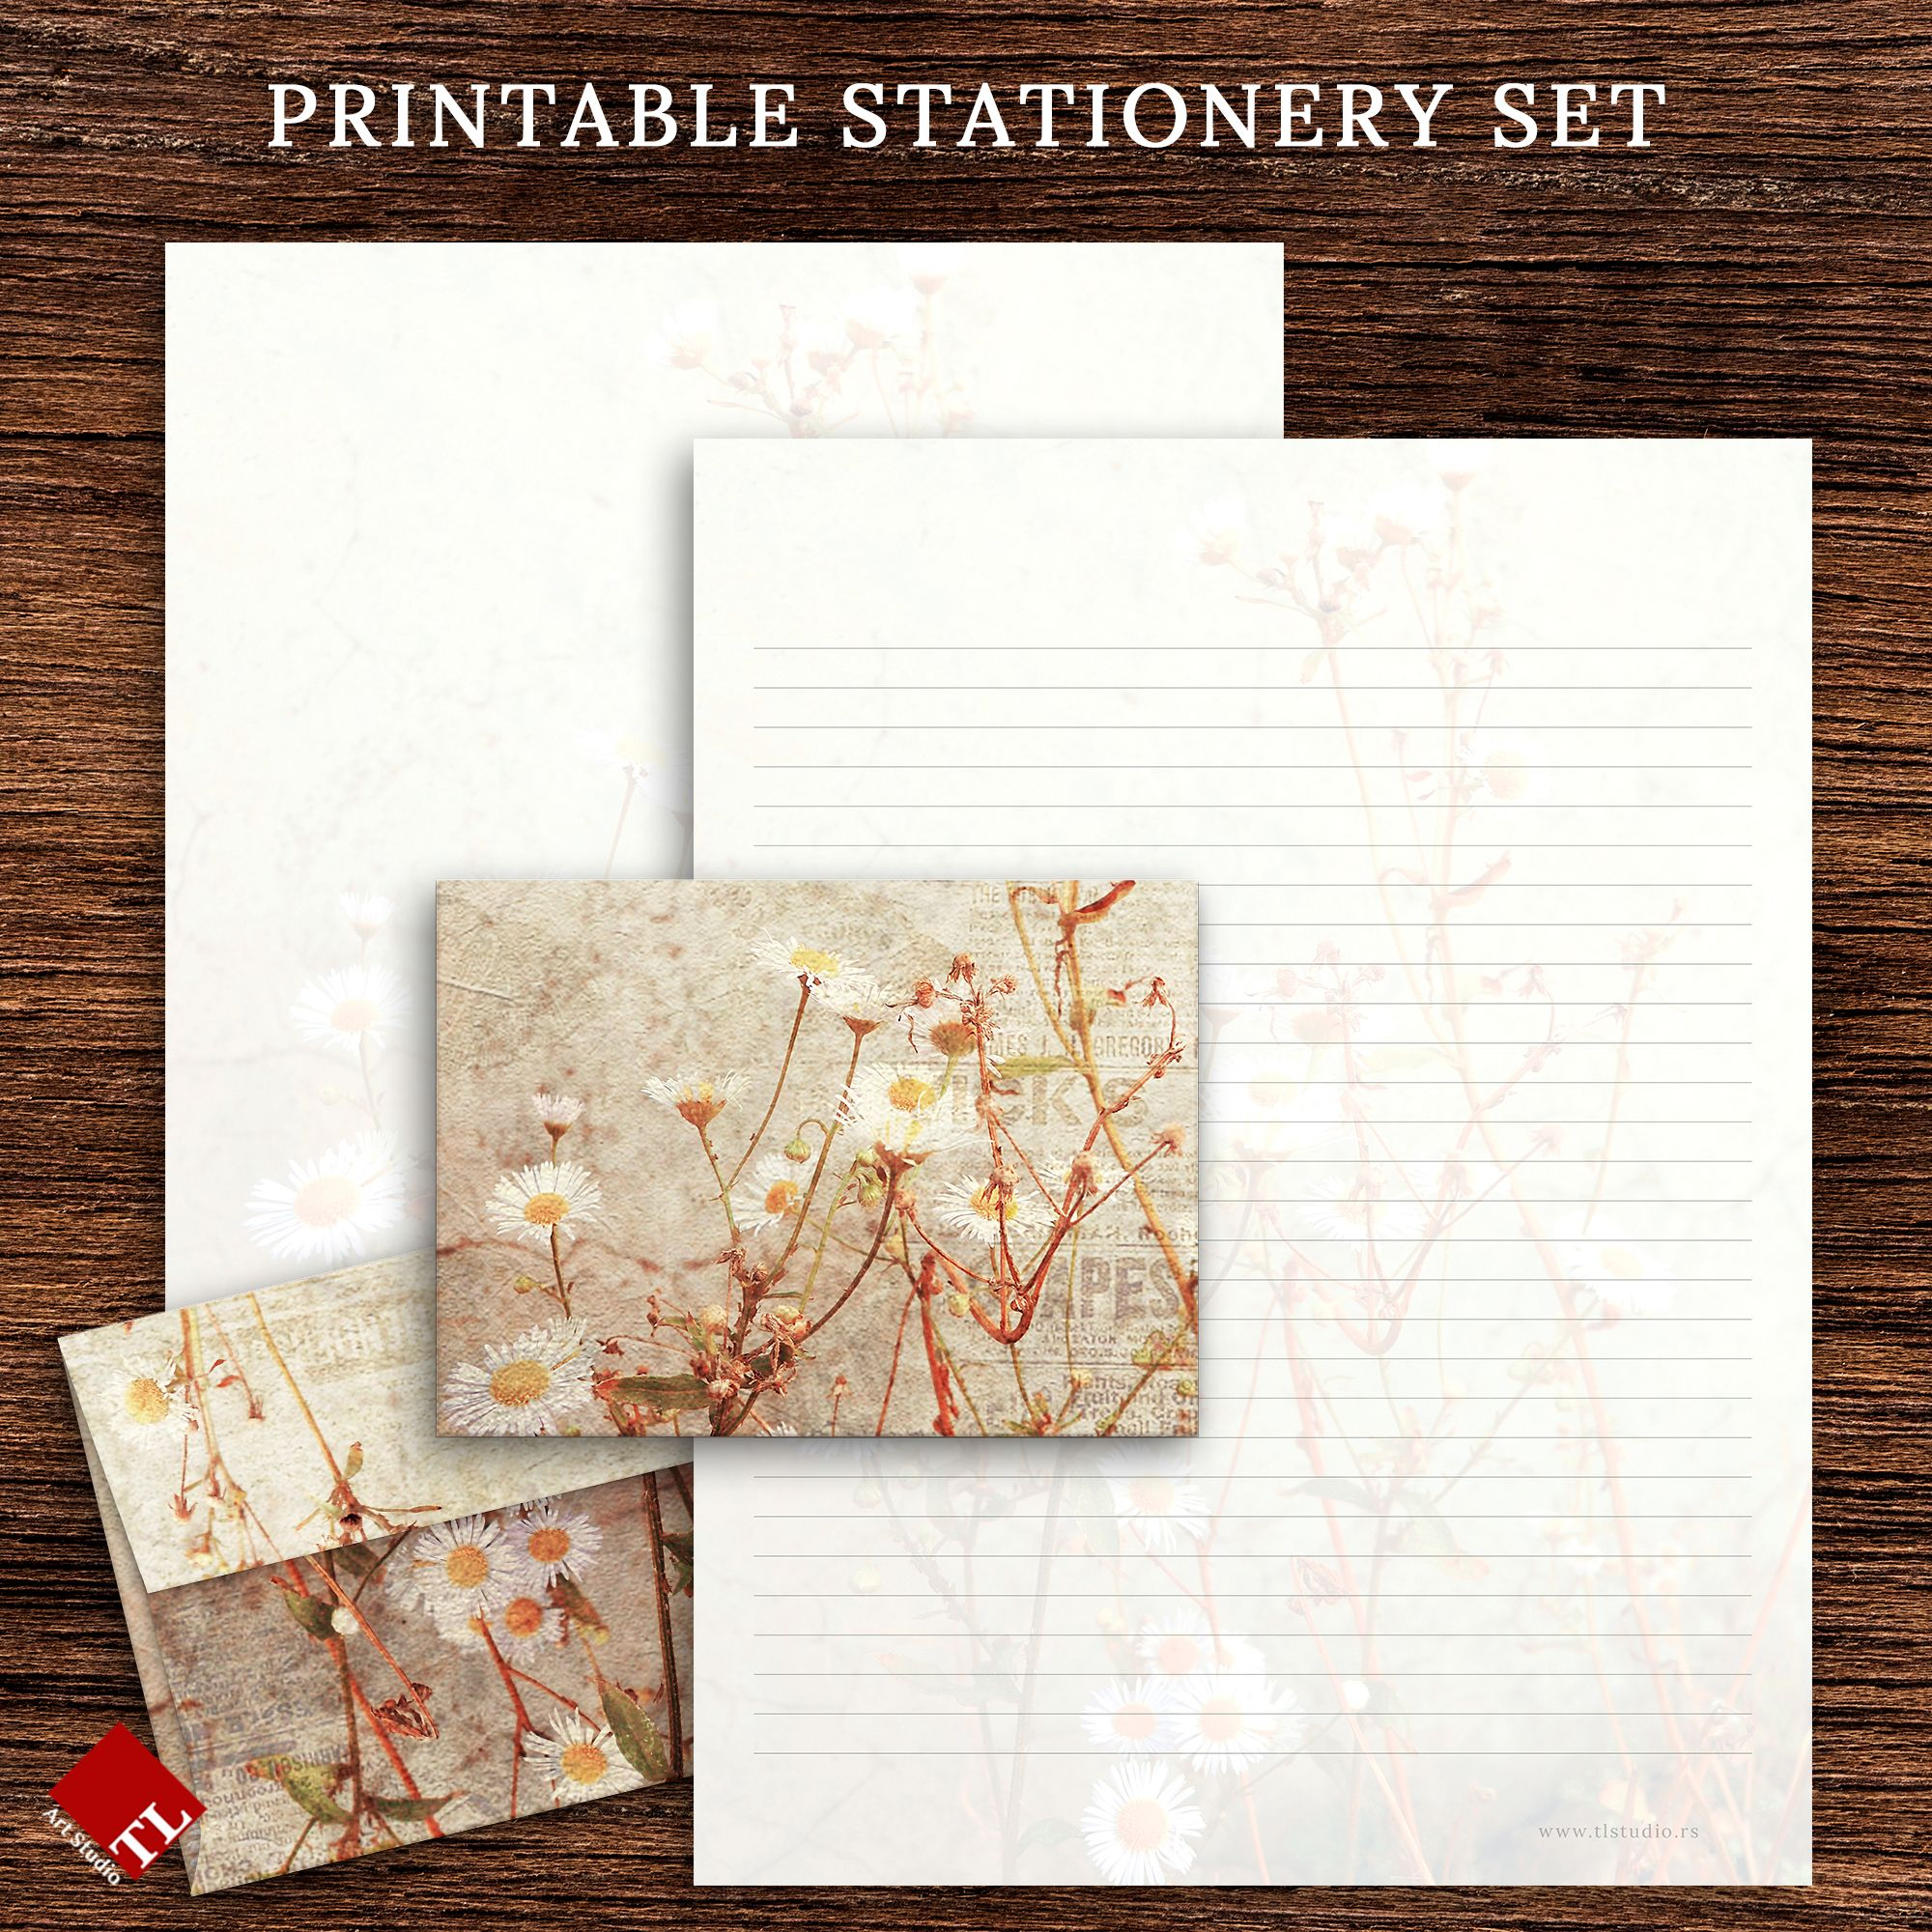 Thank You Letter Paper Letter Set Letter Paper Chinese Style